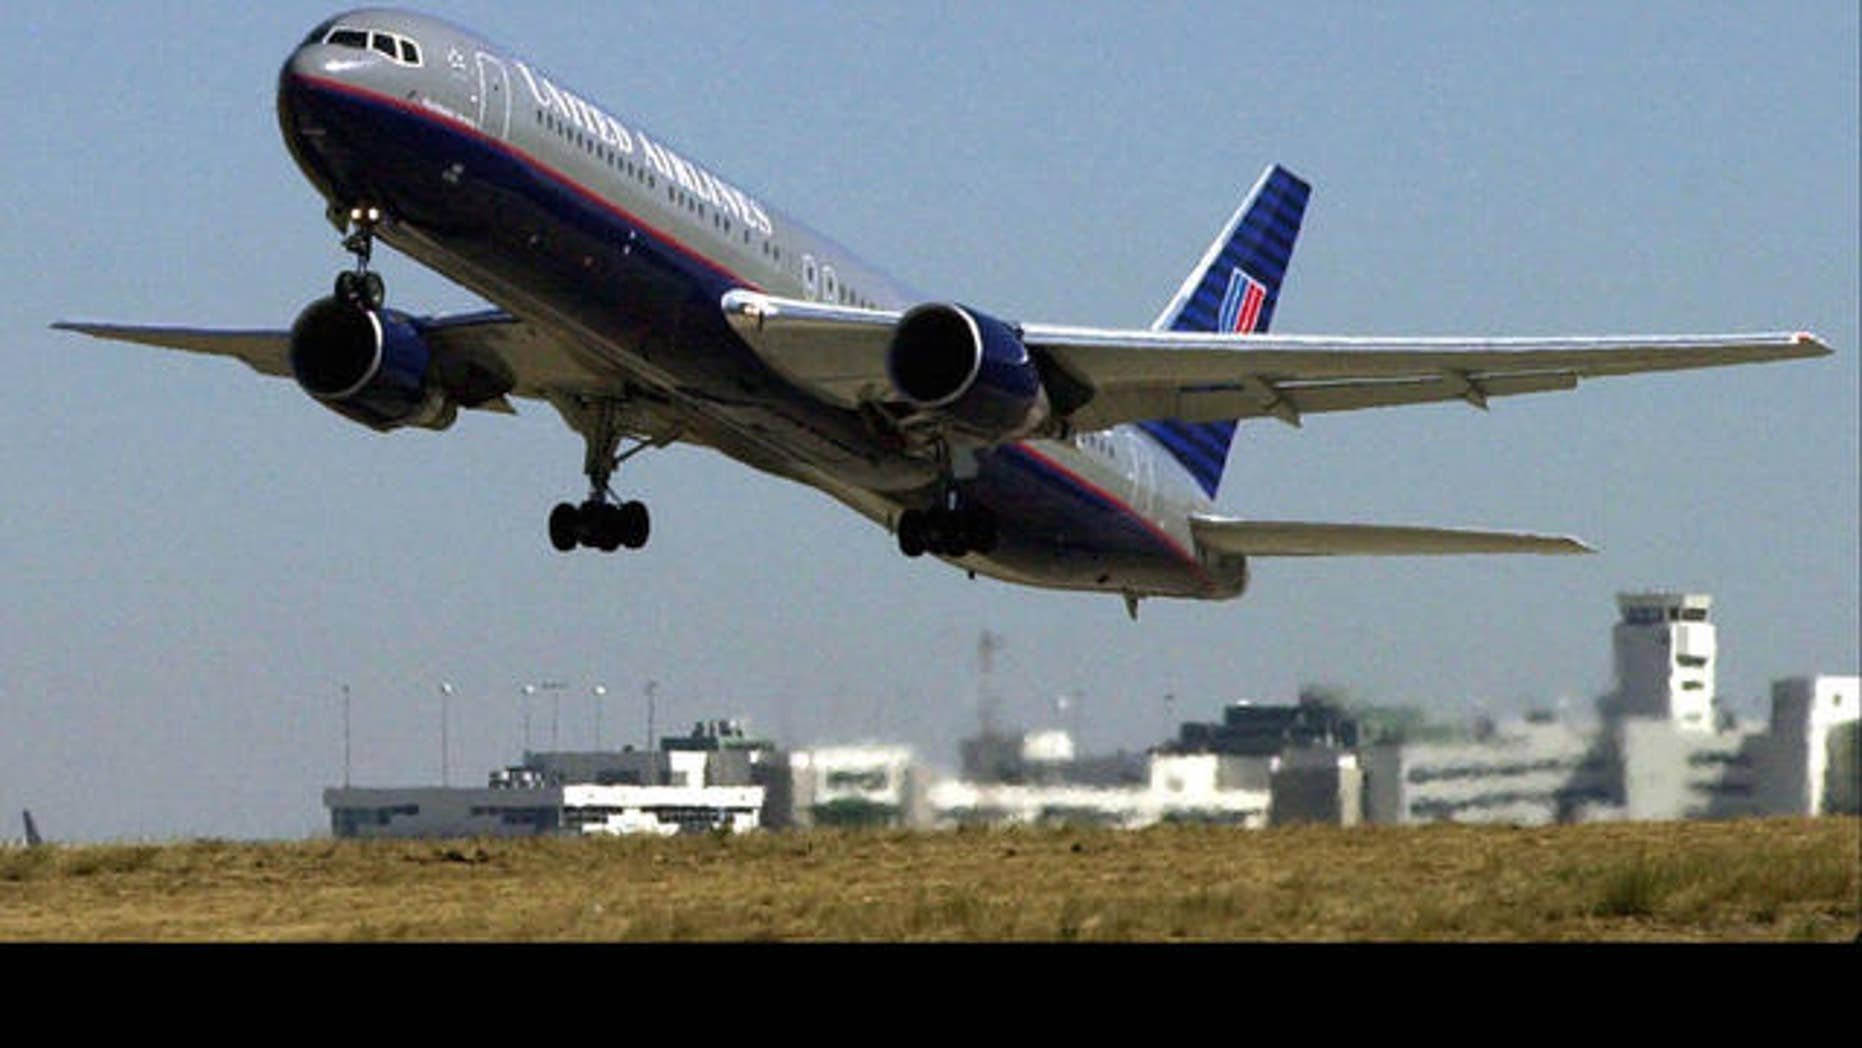 In this file photo, a United Airlines Boeing 757 jet takes off in flight. The airliner grounded 96 of its Boeing aircraft on Tuesday to perform maintenance checks that were incomplete.